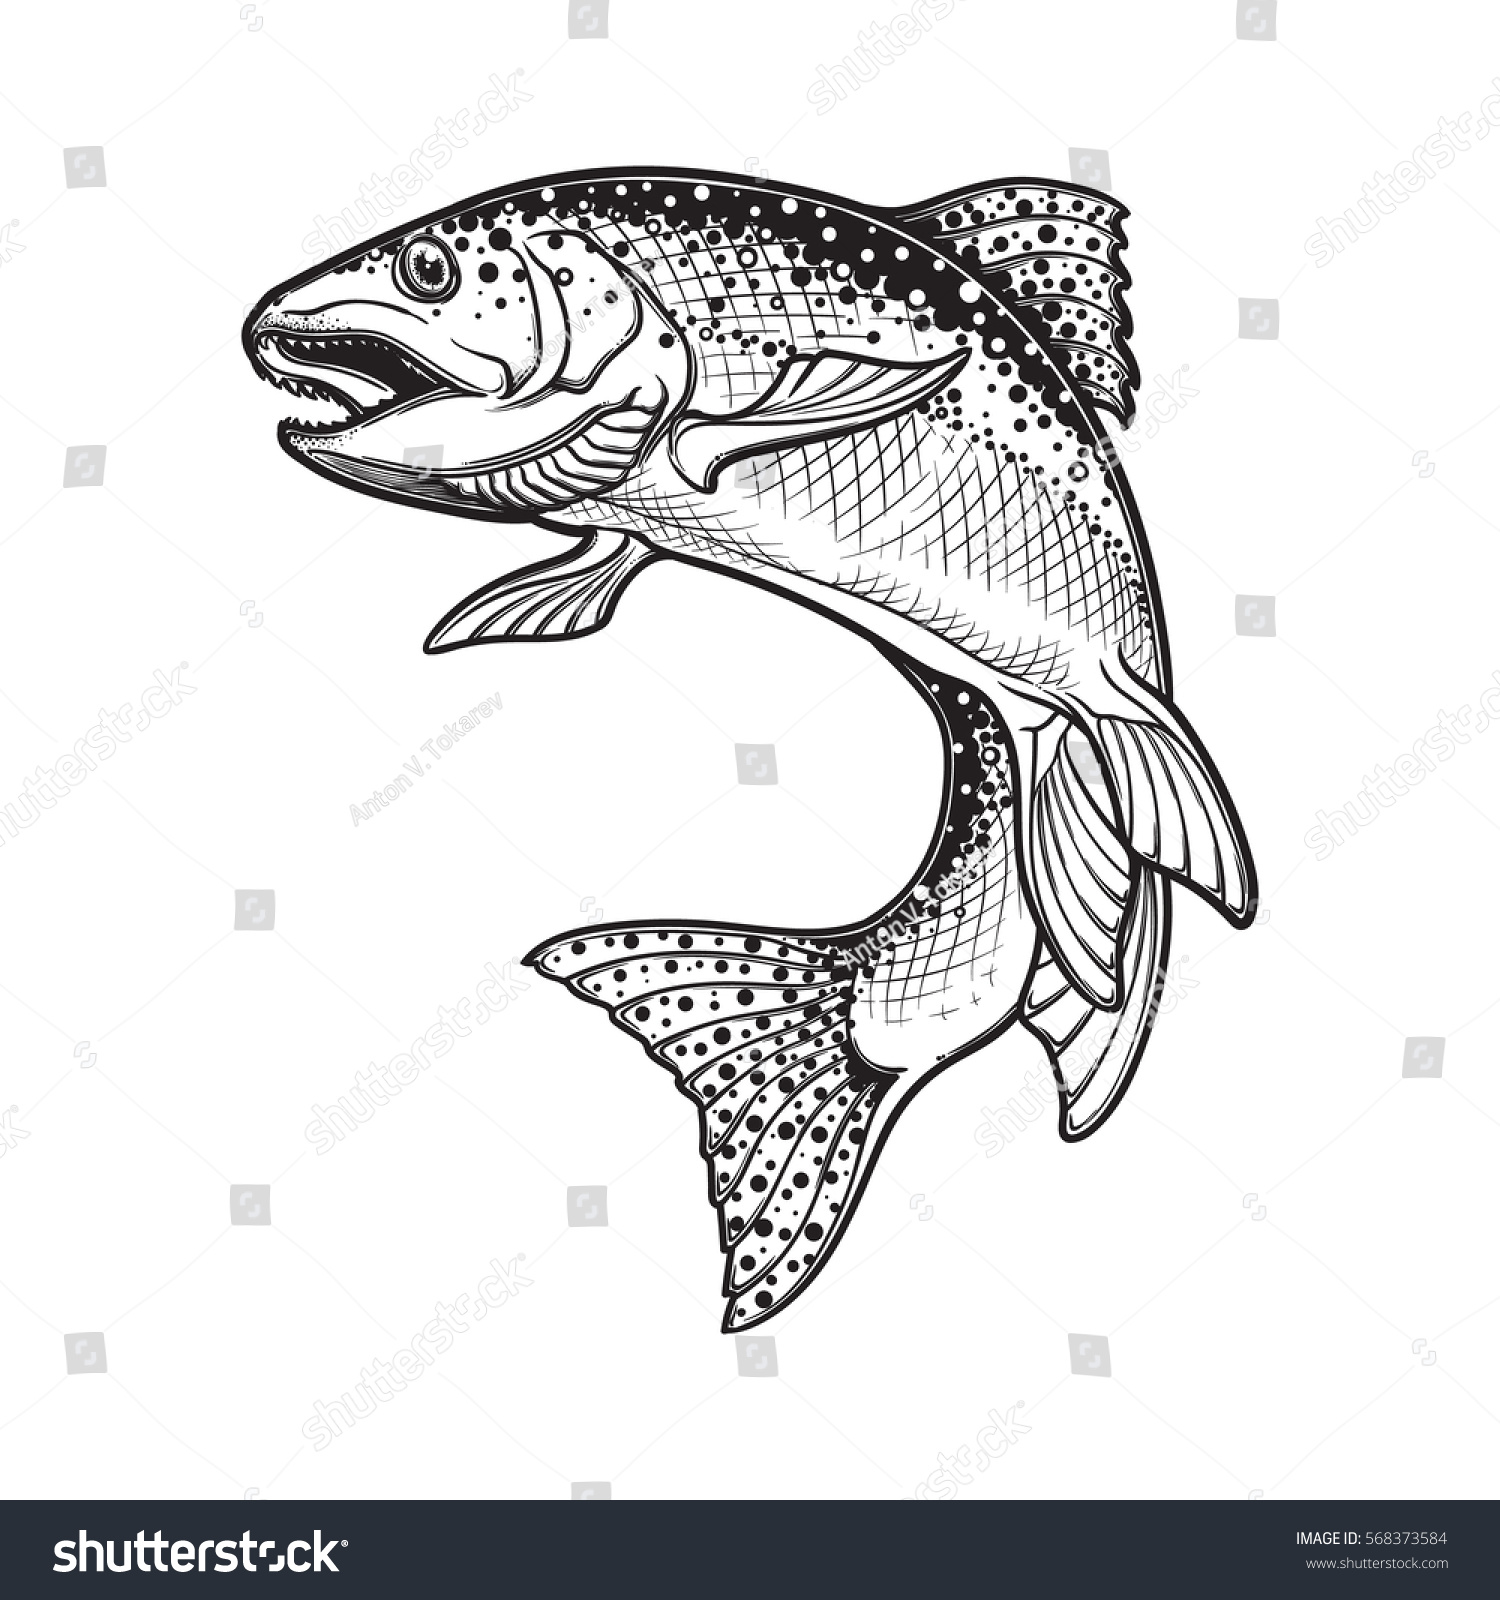 Realistic Intricate Drawing Rainbow Trout Jumping Stock Vector ...